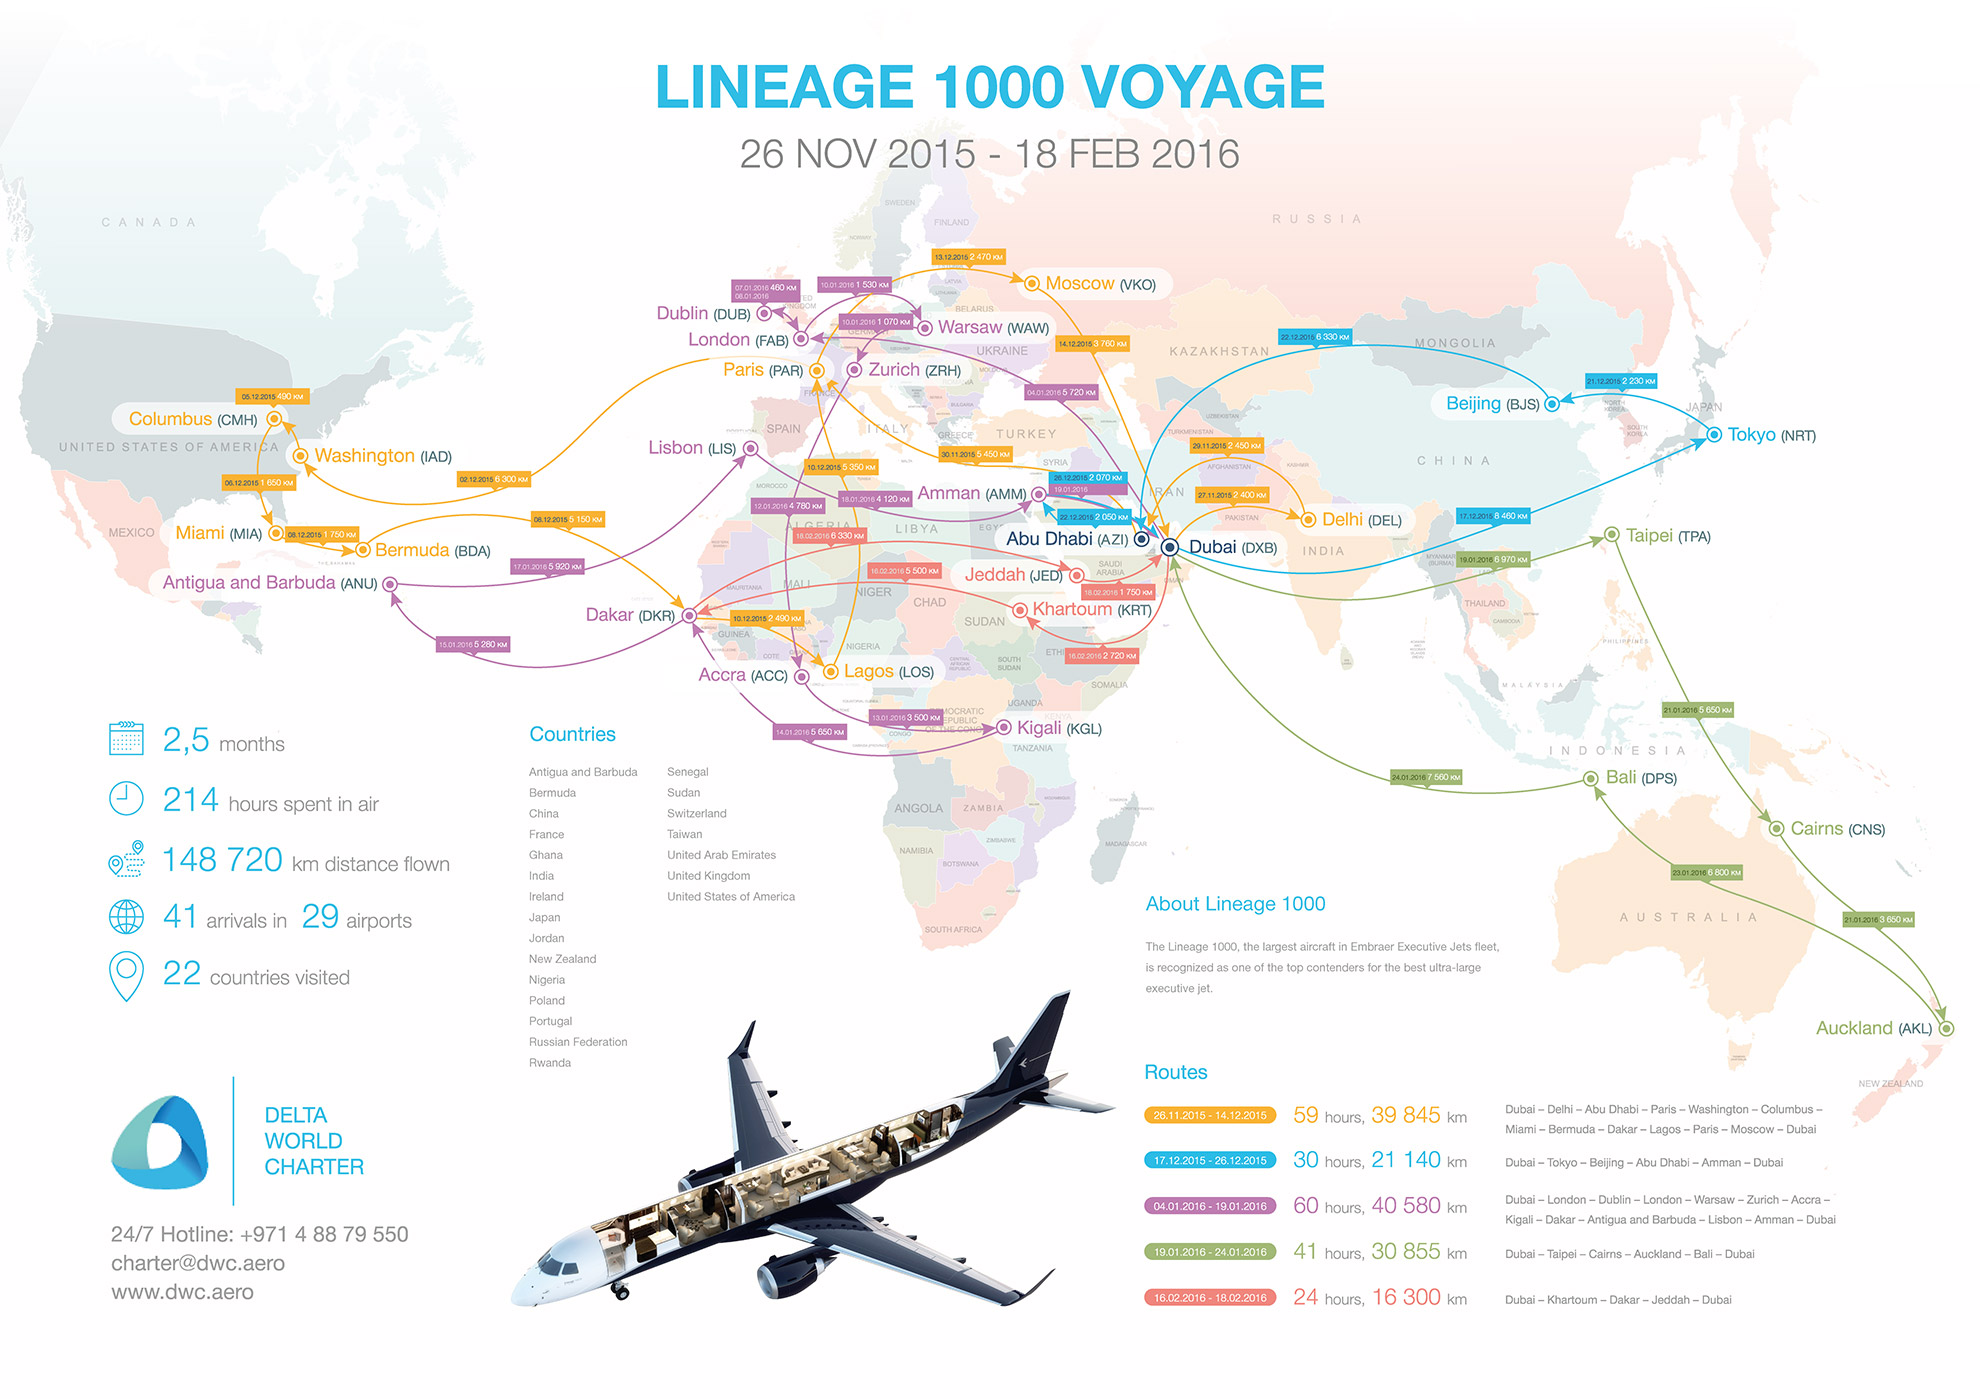 Linear 1000 vouage map design